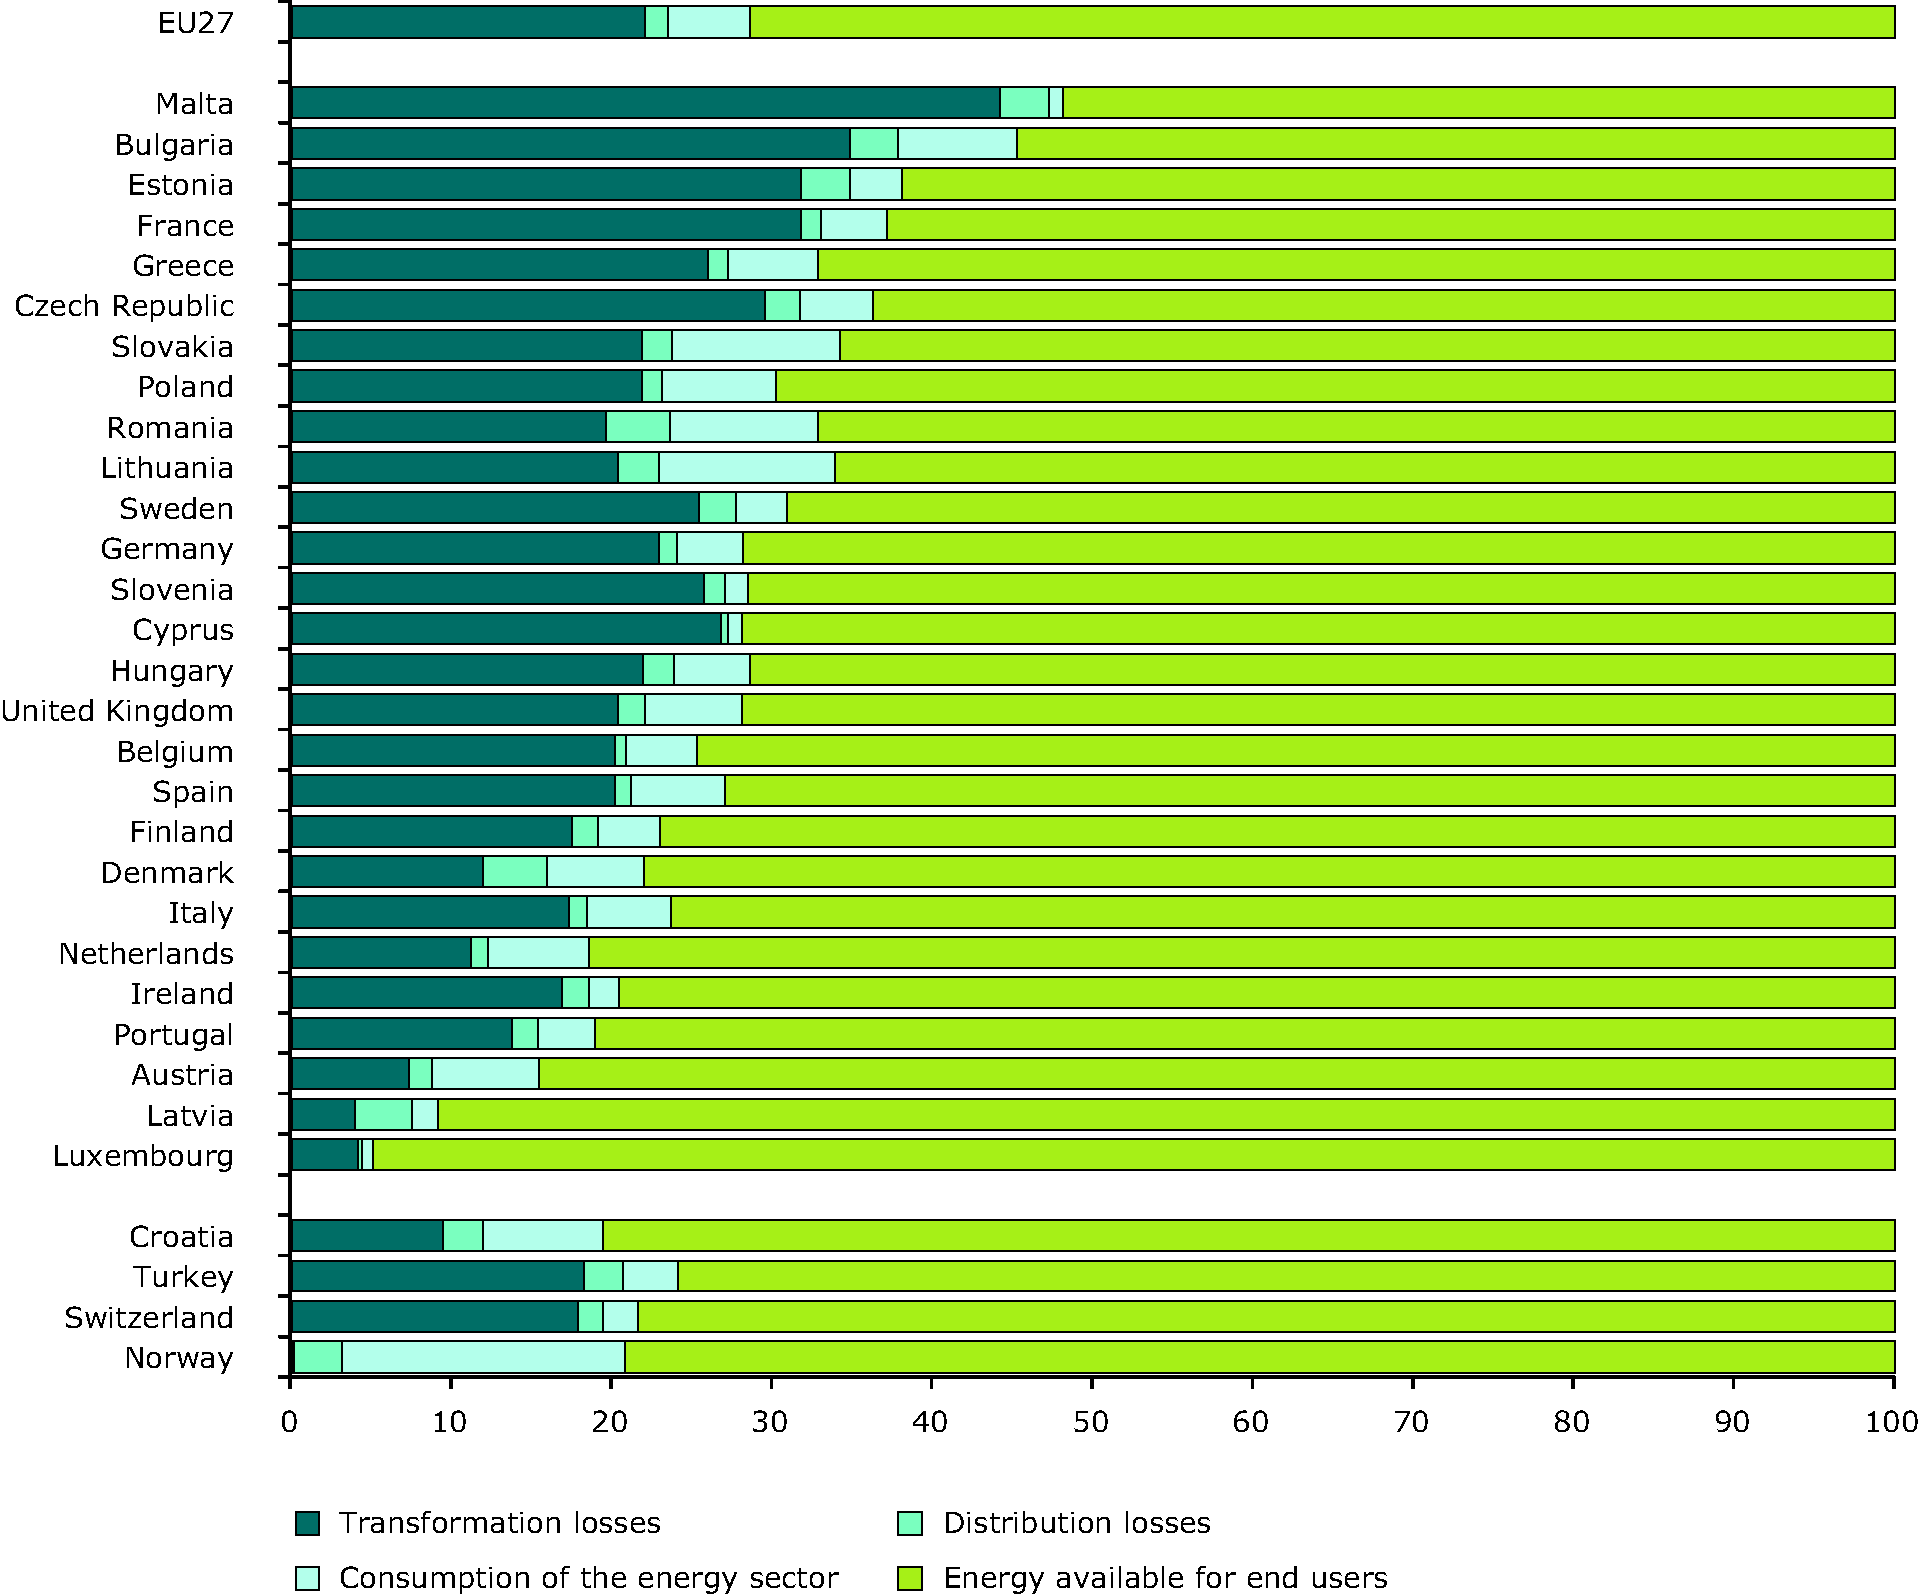 Energy losses and energy availability for end users in 2008 (% of primary energy consumption)